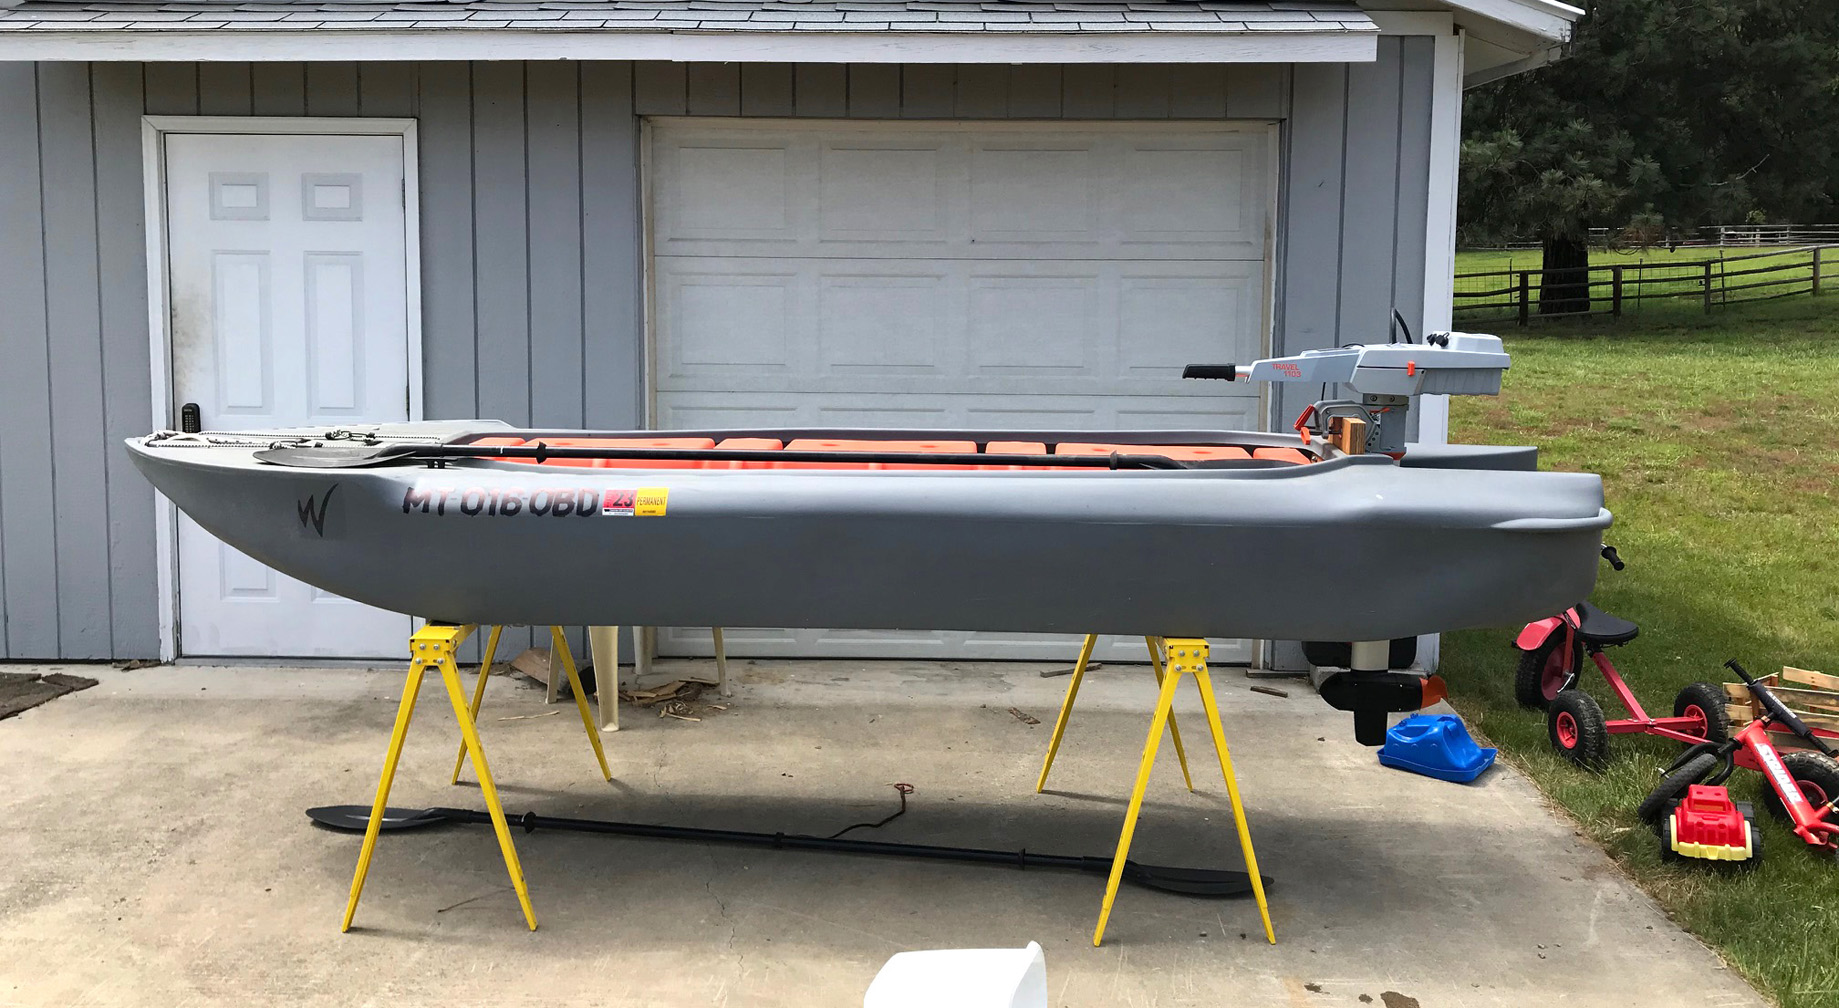 Wavewalk S4 skiff outfitted with an electric motor, Montana